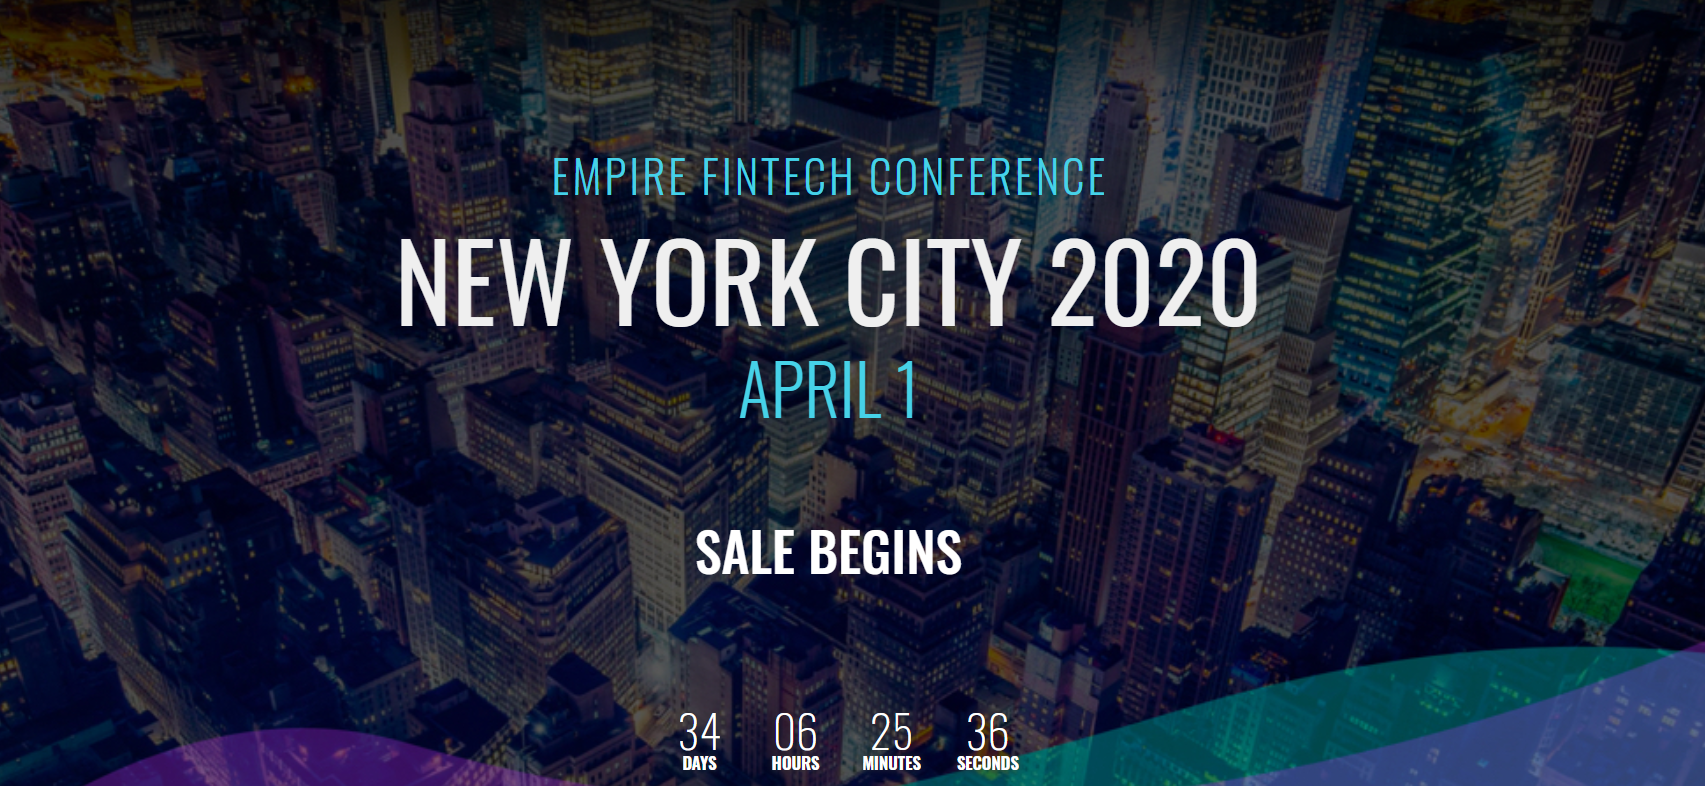 Événement fintech 2019 - Empire Startups Fintech Conference New York